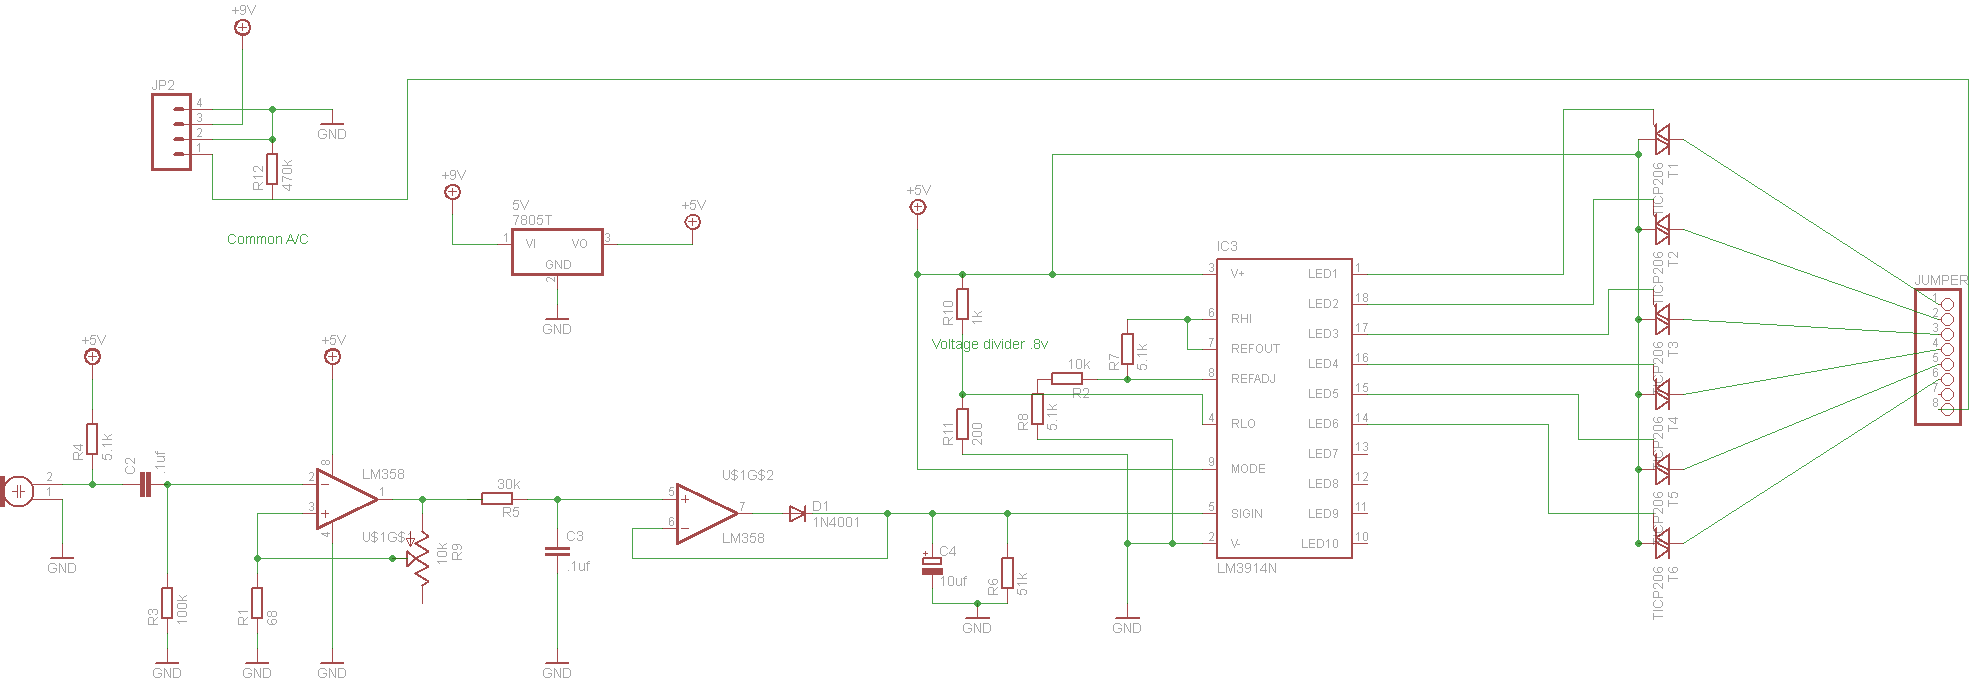 wiring diagram bazooka subwoofer with El Wire Schematic on Bazooka Tube Wiring Diagram together with Speaker System Wiring Diagrams additionally Tempstar Txa424aka1 Wiring Diagram besides Wire Diagram For Subwoofer in addition Motorola Police Radio Wiring Diagrams.